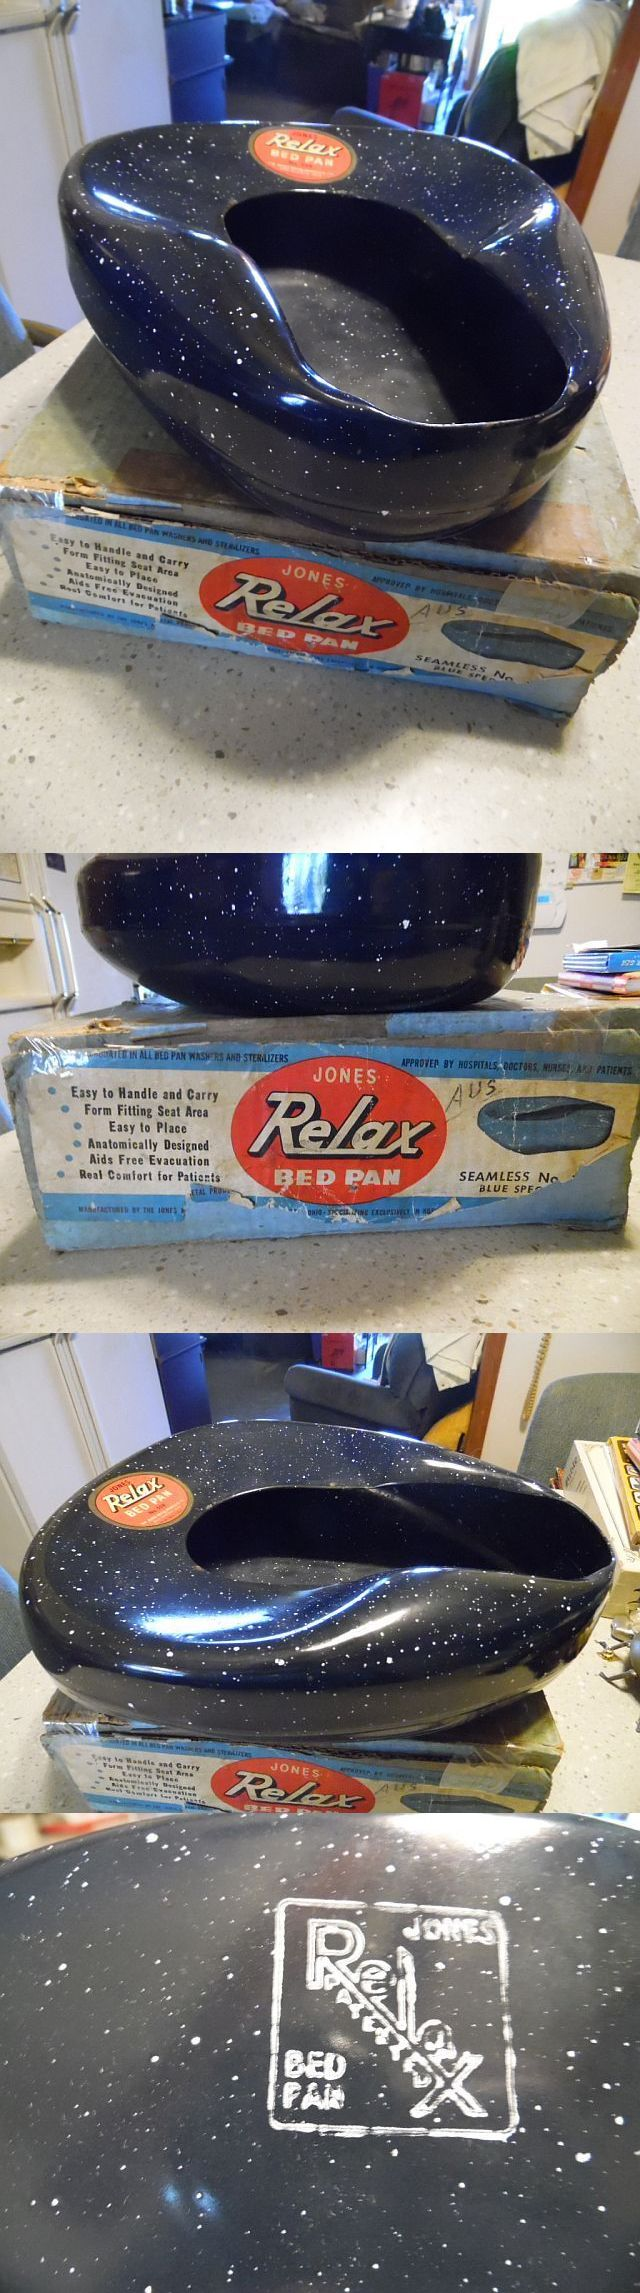 Portable Urinals and Bed Pans: New Old Stock- Jones- Relax Galvanized Bed Pan In Old Original Box. -> BUY IT NOW ONLY: $30 on eBay!